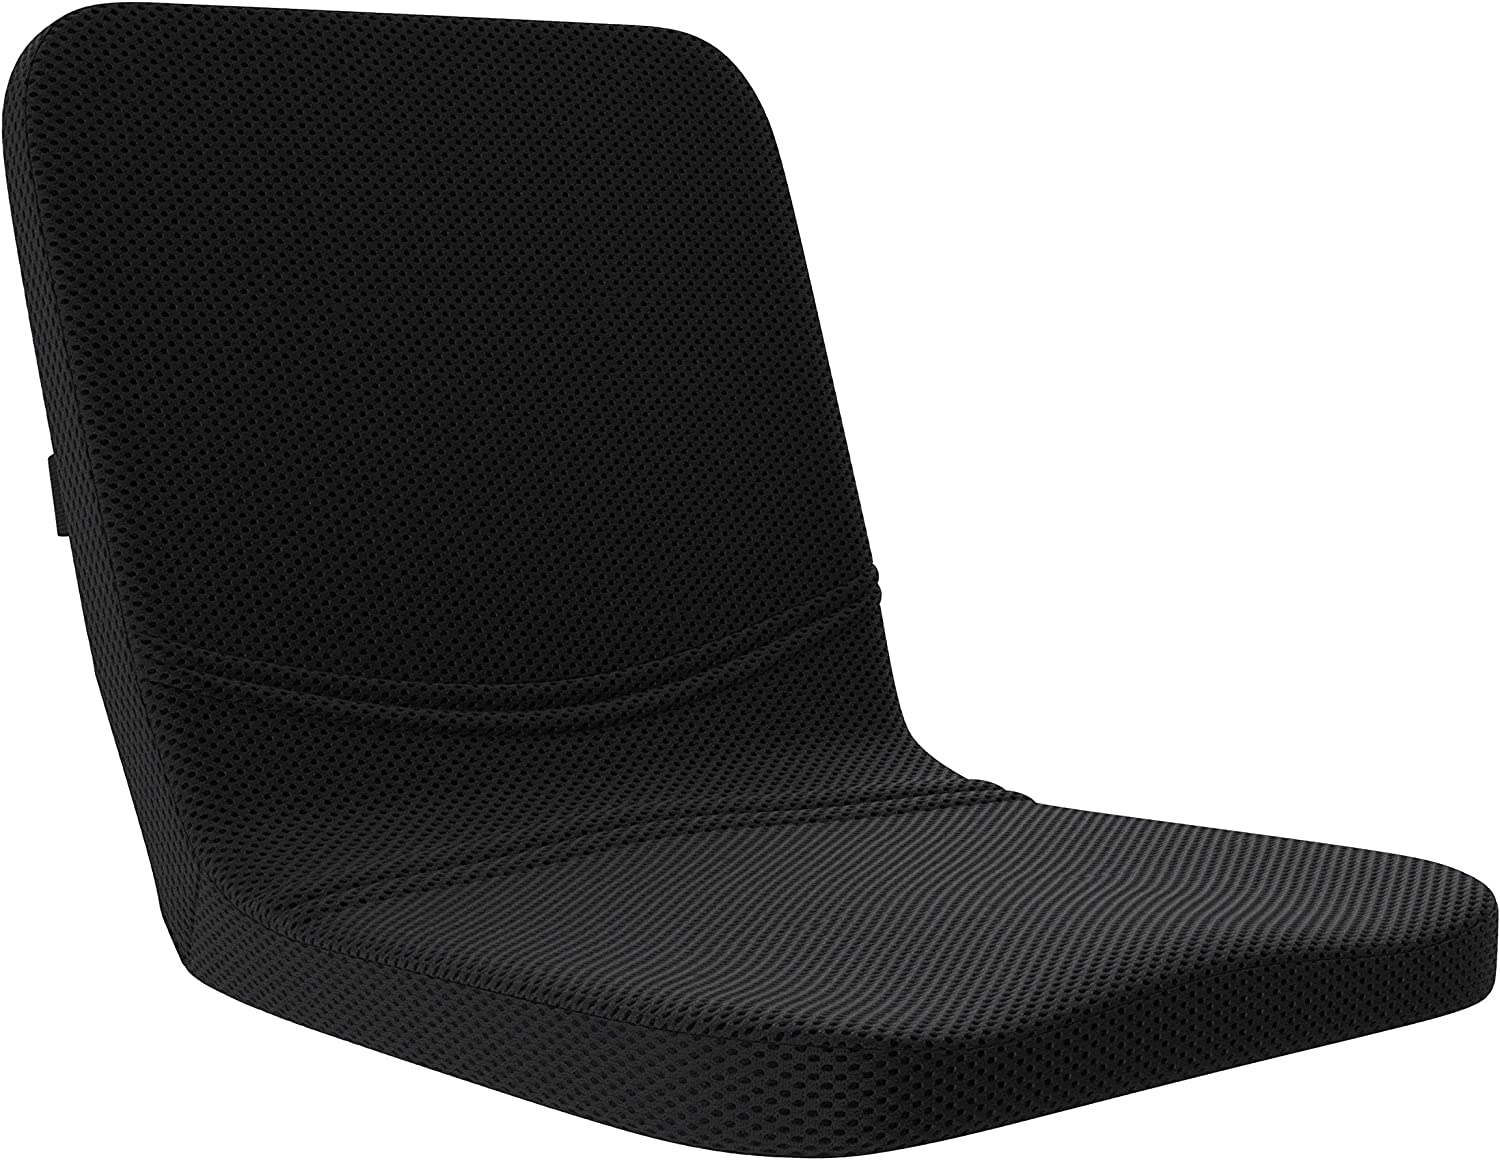 Amazon.com: bonmedico All-in-One Foam Seat Cushion - Home Office Gel Comfort for Coccyx/Tailbone & Sciatica Pain Relief with Back Support, Meditation Cushion - Great for Car Seat Cushion or Office Seat: Kitchen